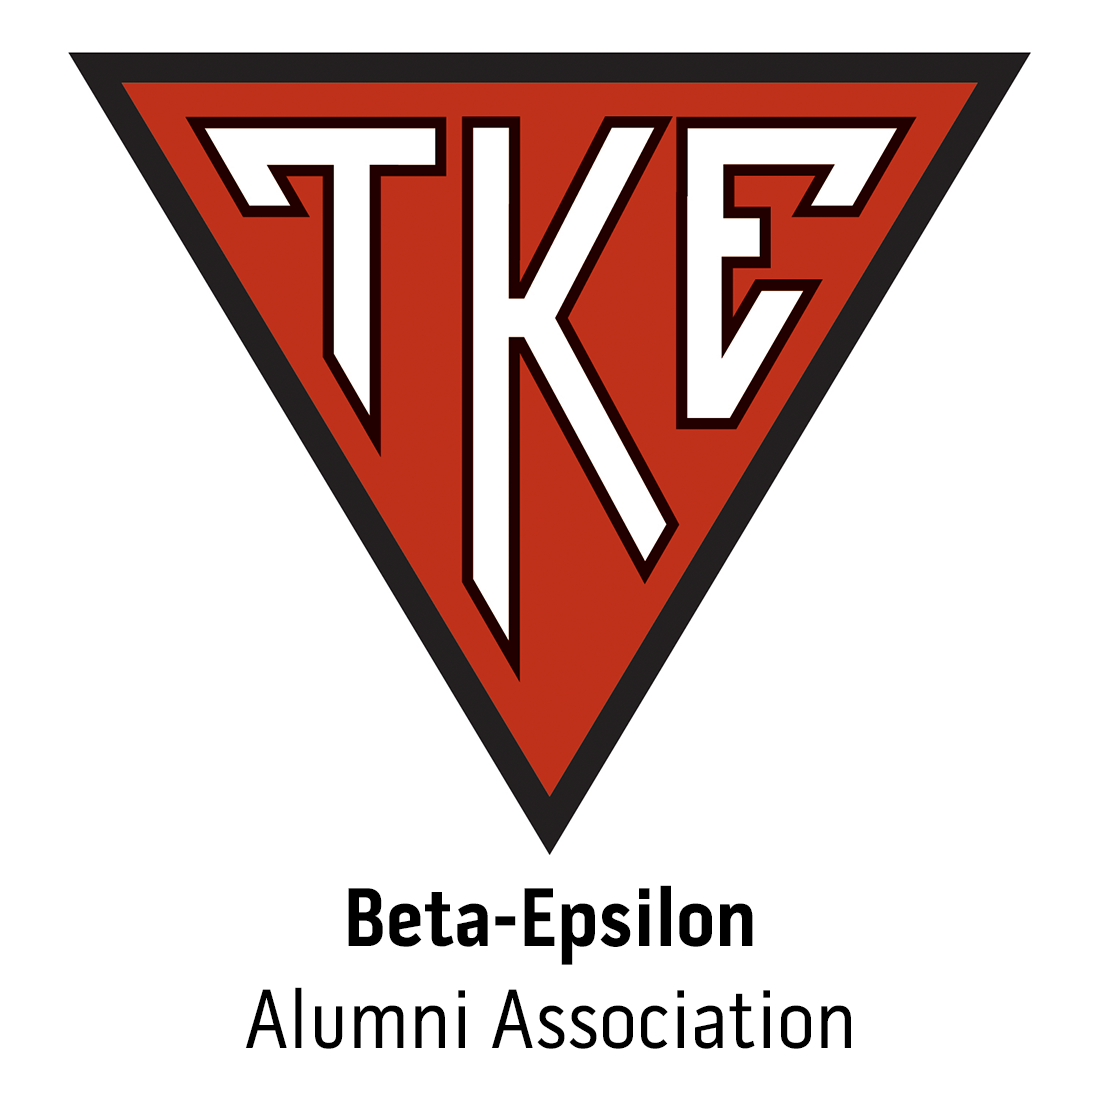 Beta-Epsilon Alumni Association at Trine University